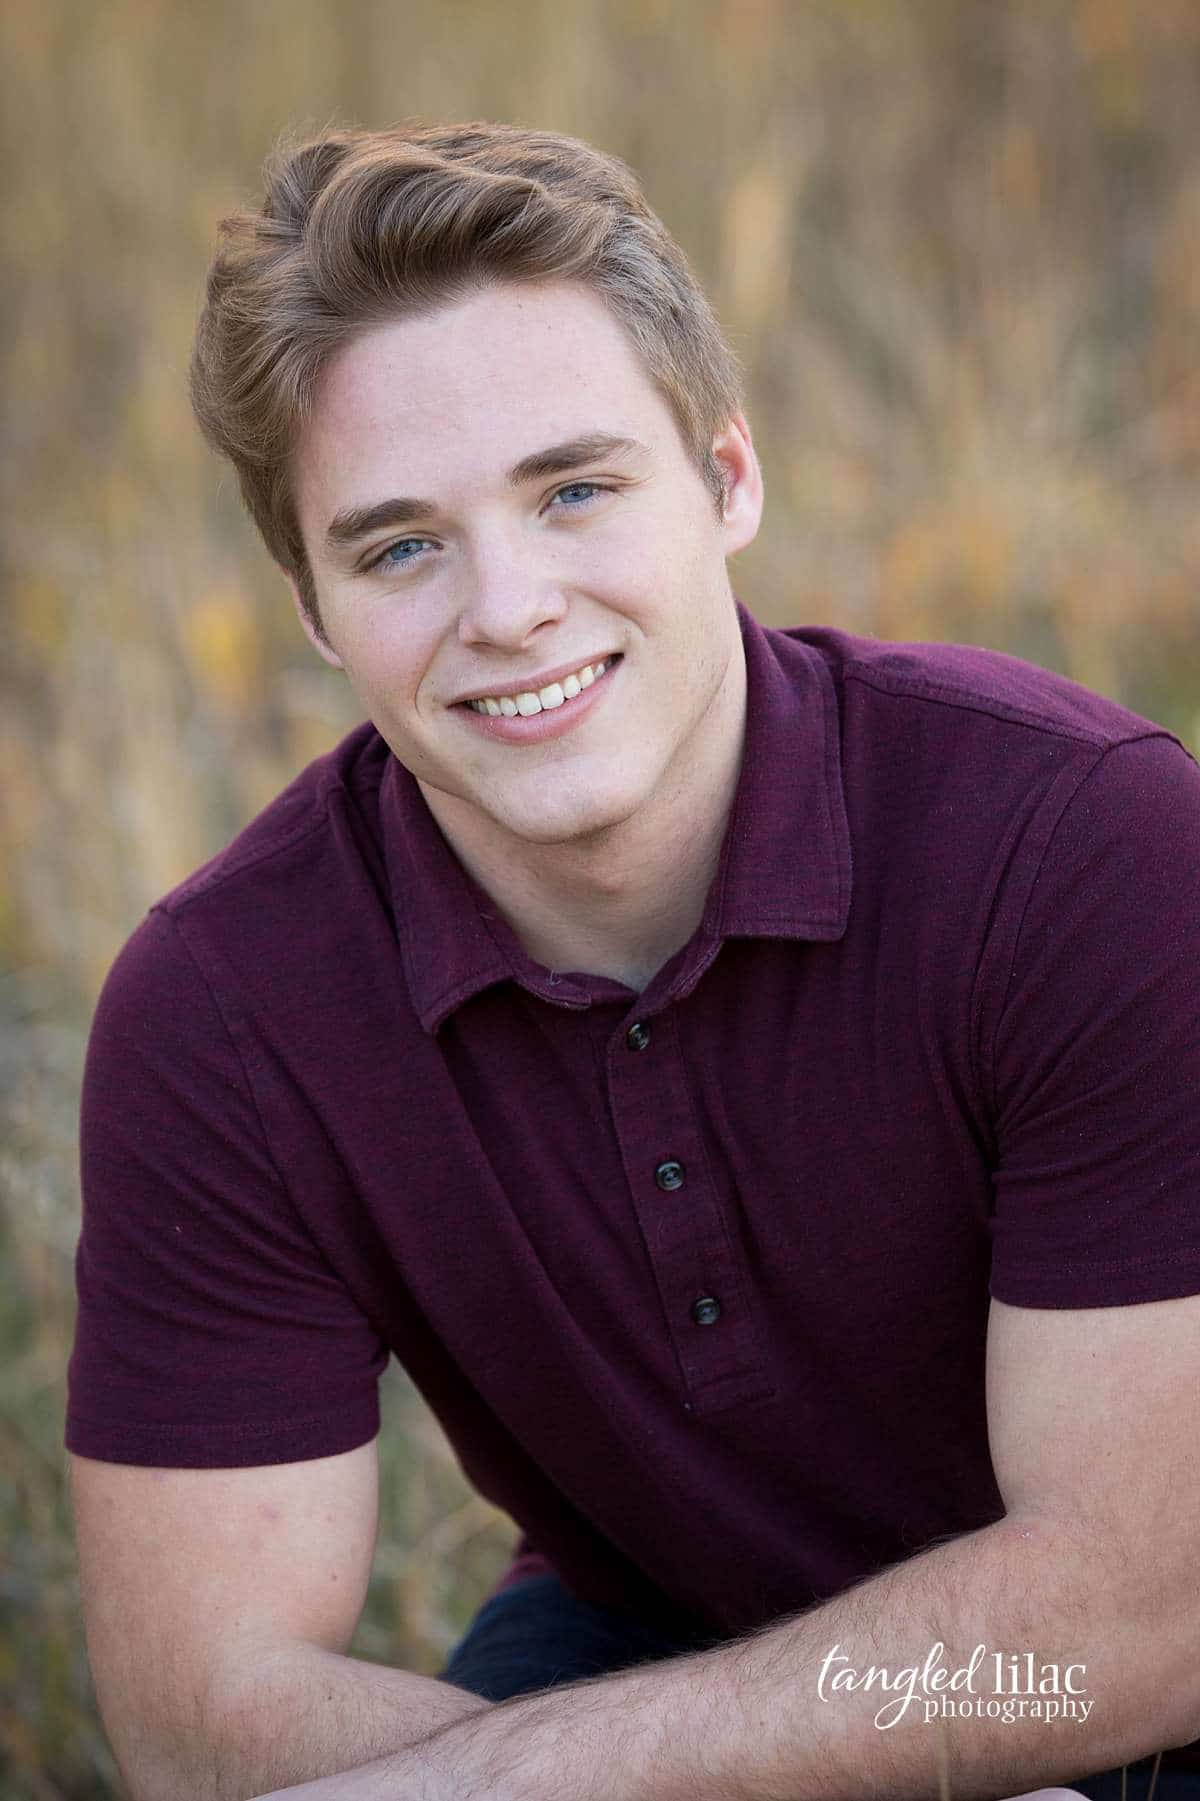 High School Senior Boy doing senior photography during the fall with colors